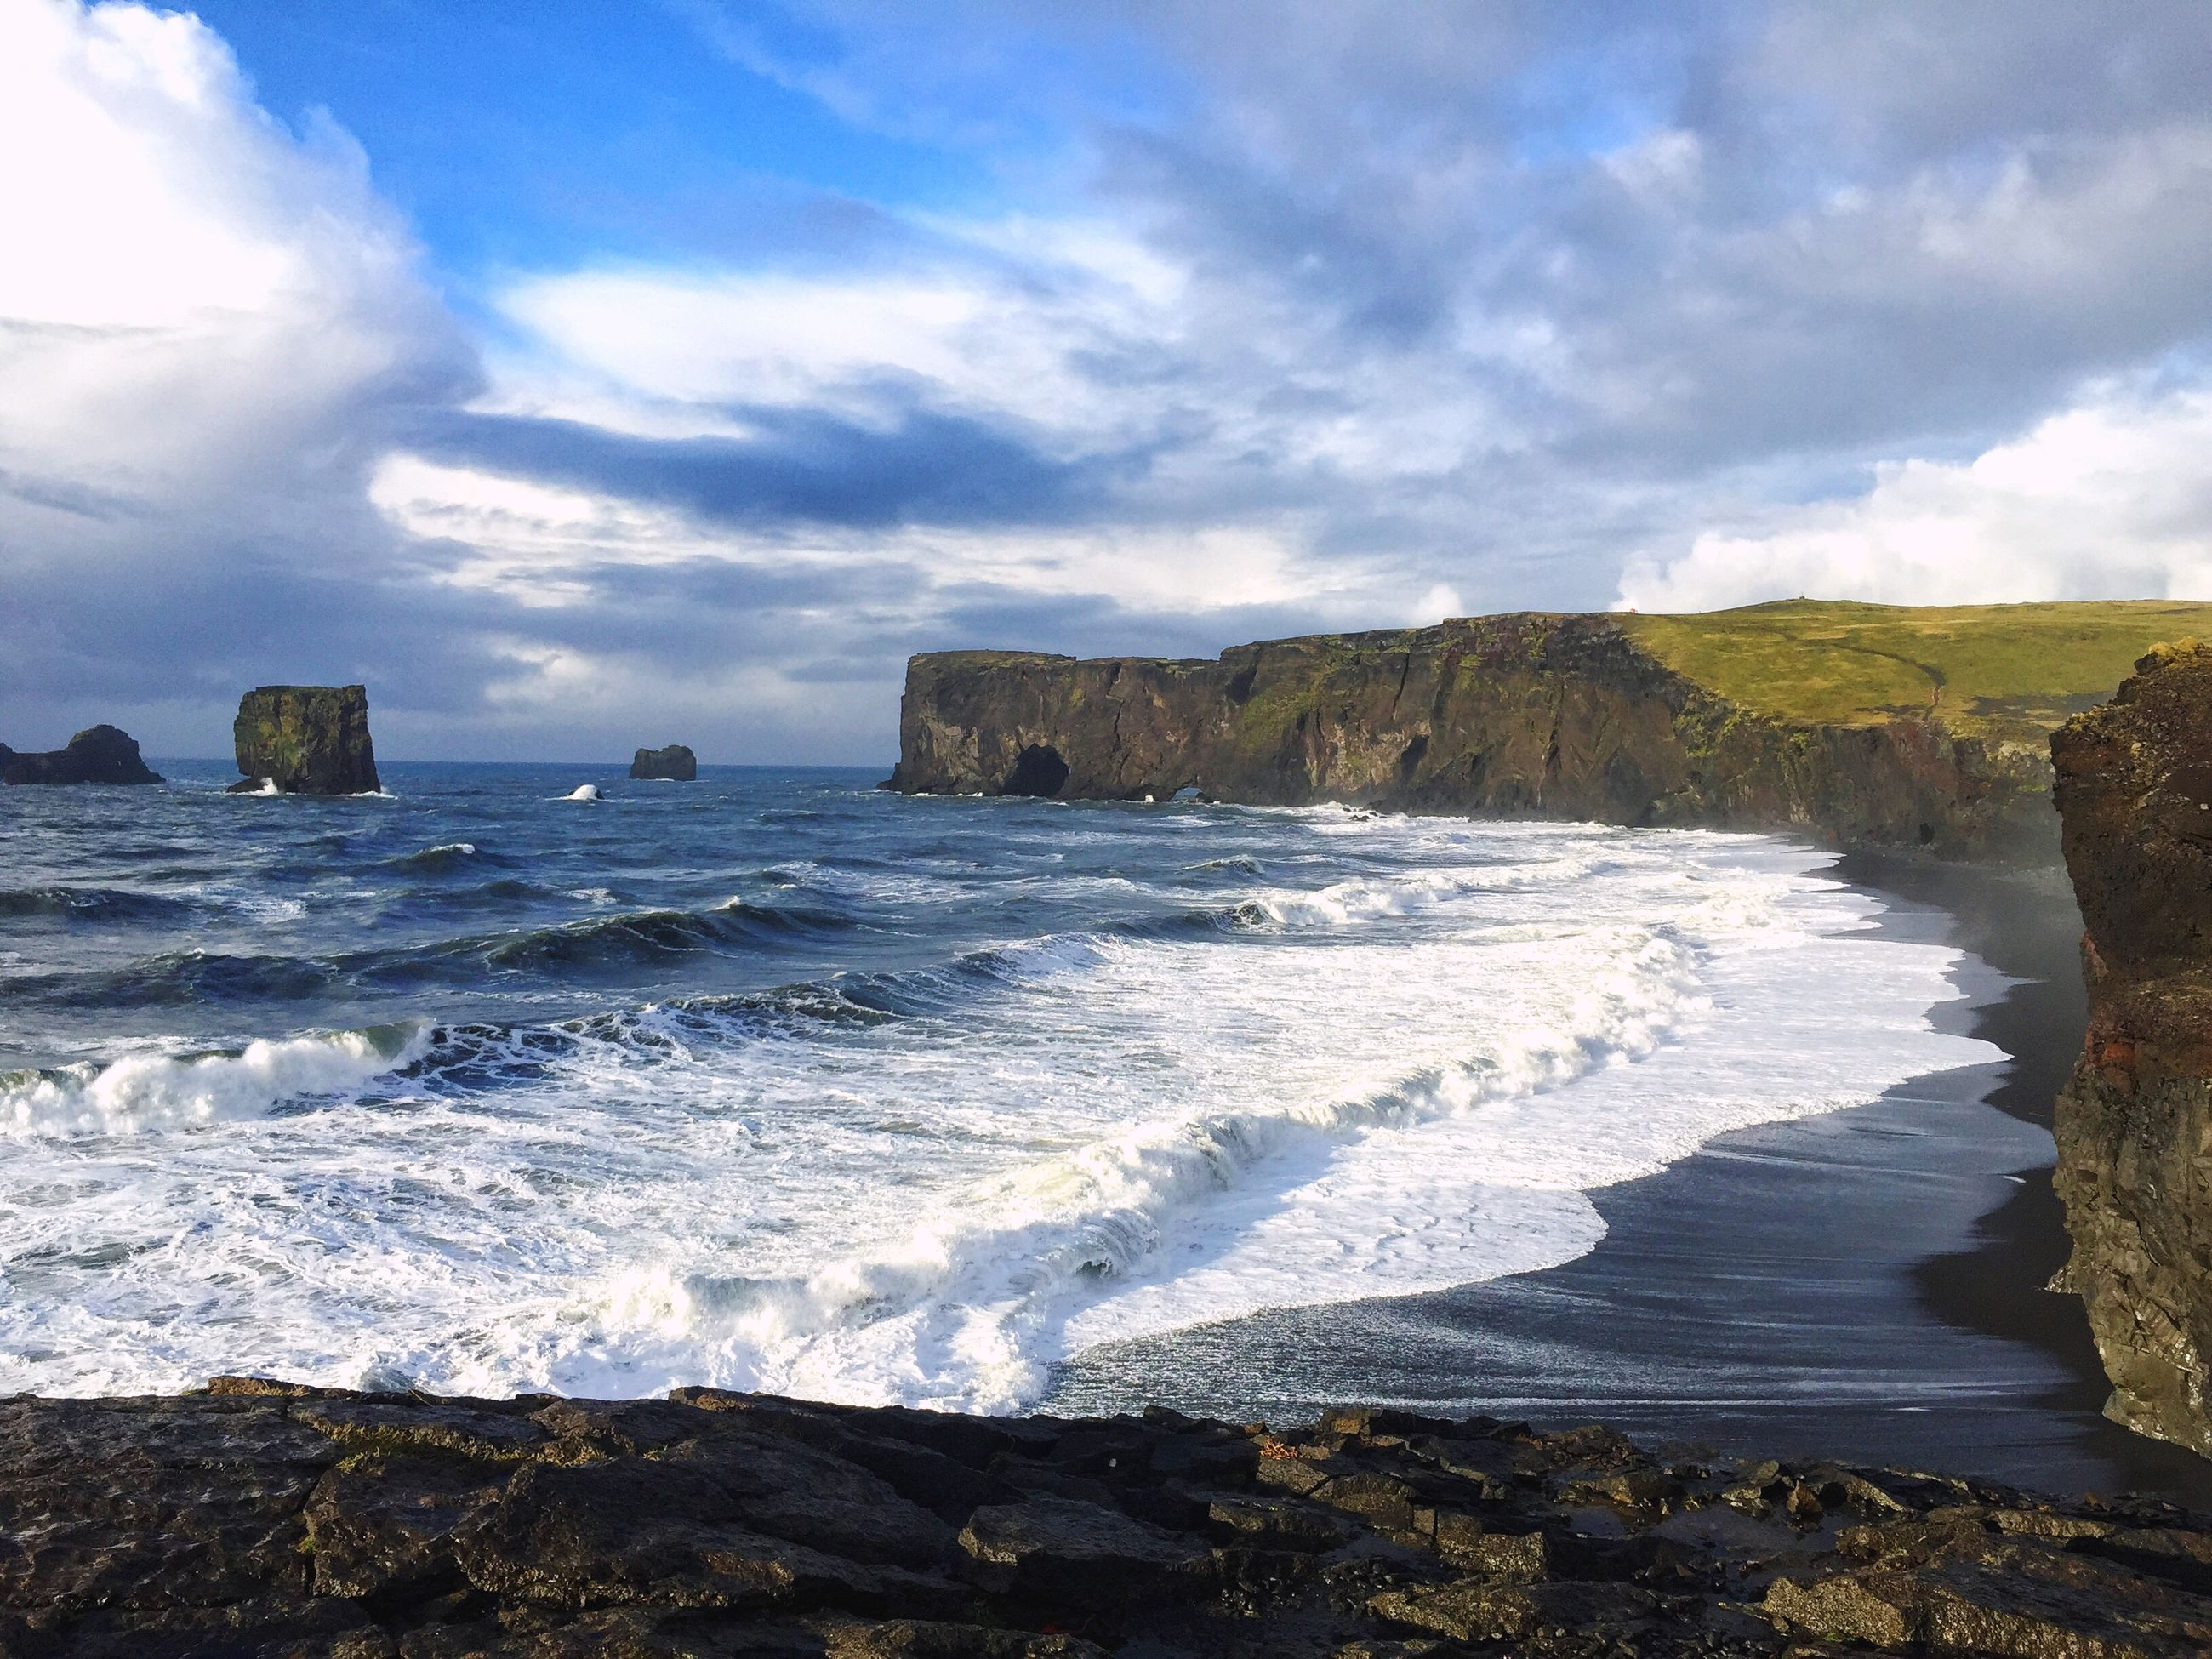 water, sea, sky, surf, wave, scenics, beauty in nature, rock - object, beach, horizon over water, cloud - sky, shore, nature, motion, tranquil scene, rock formation, tranquility, cloudy, coastline, power in nature